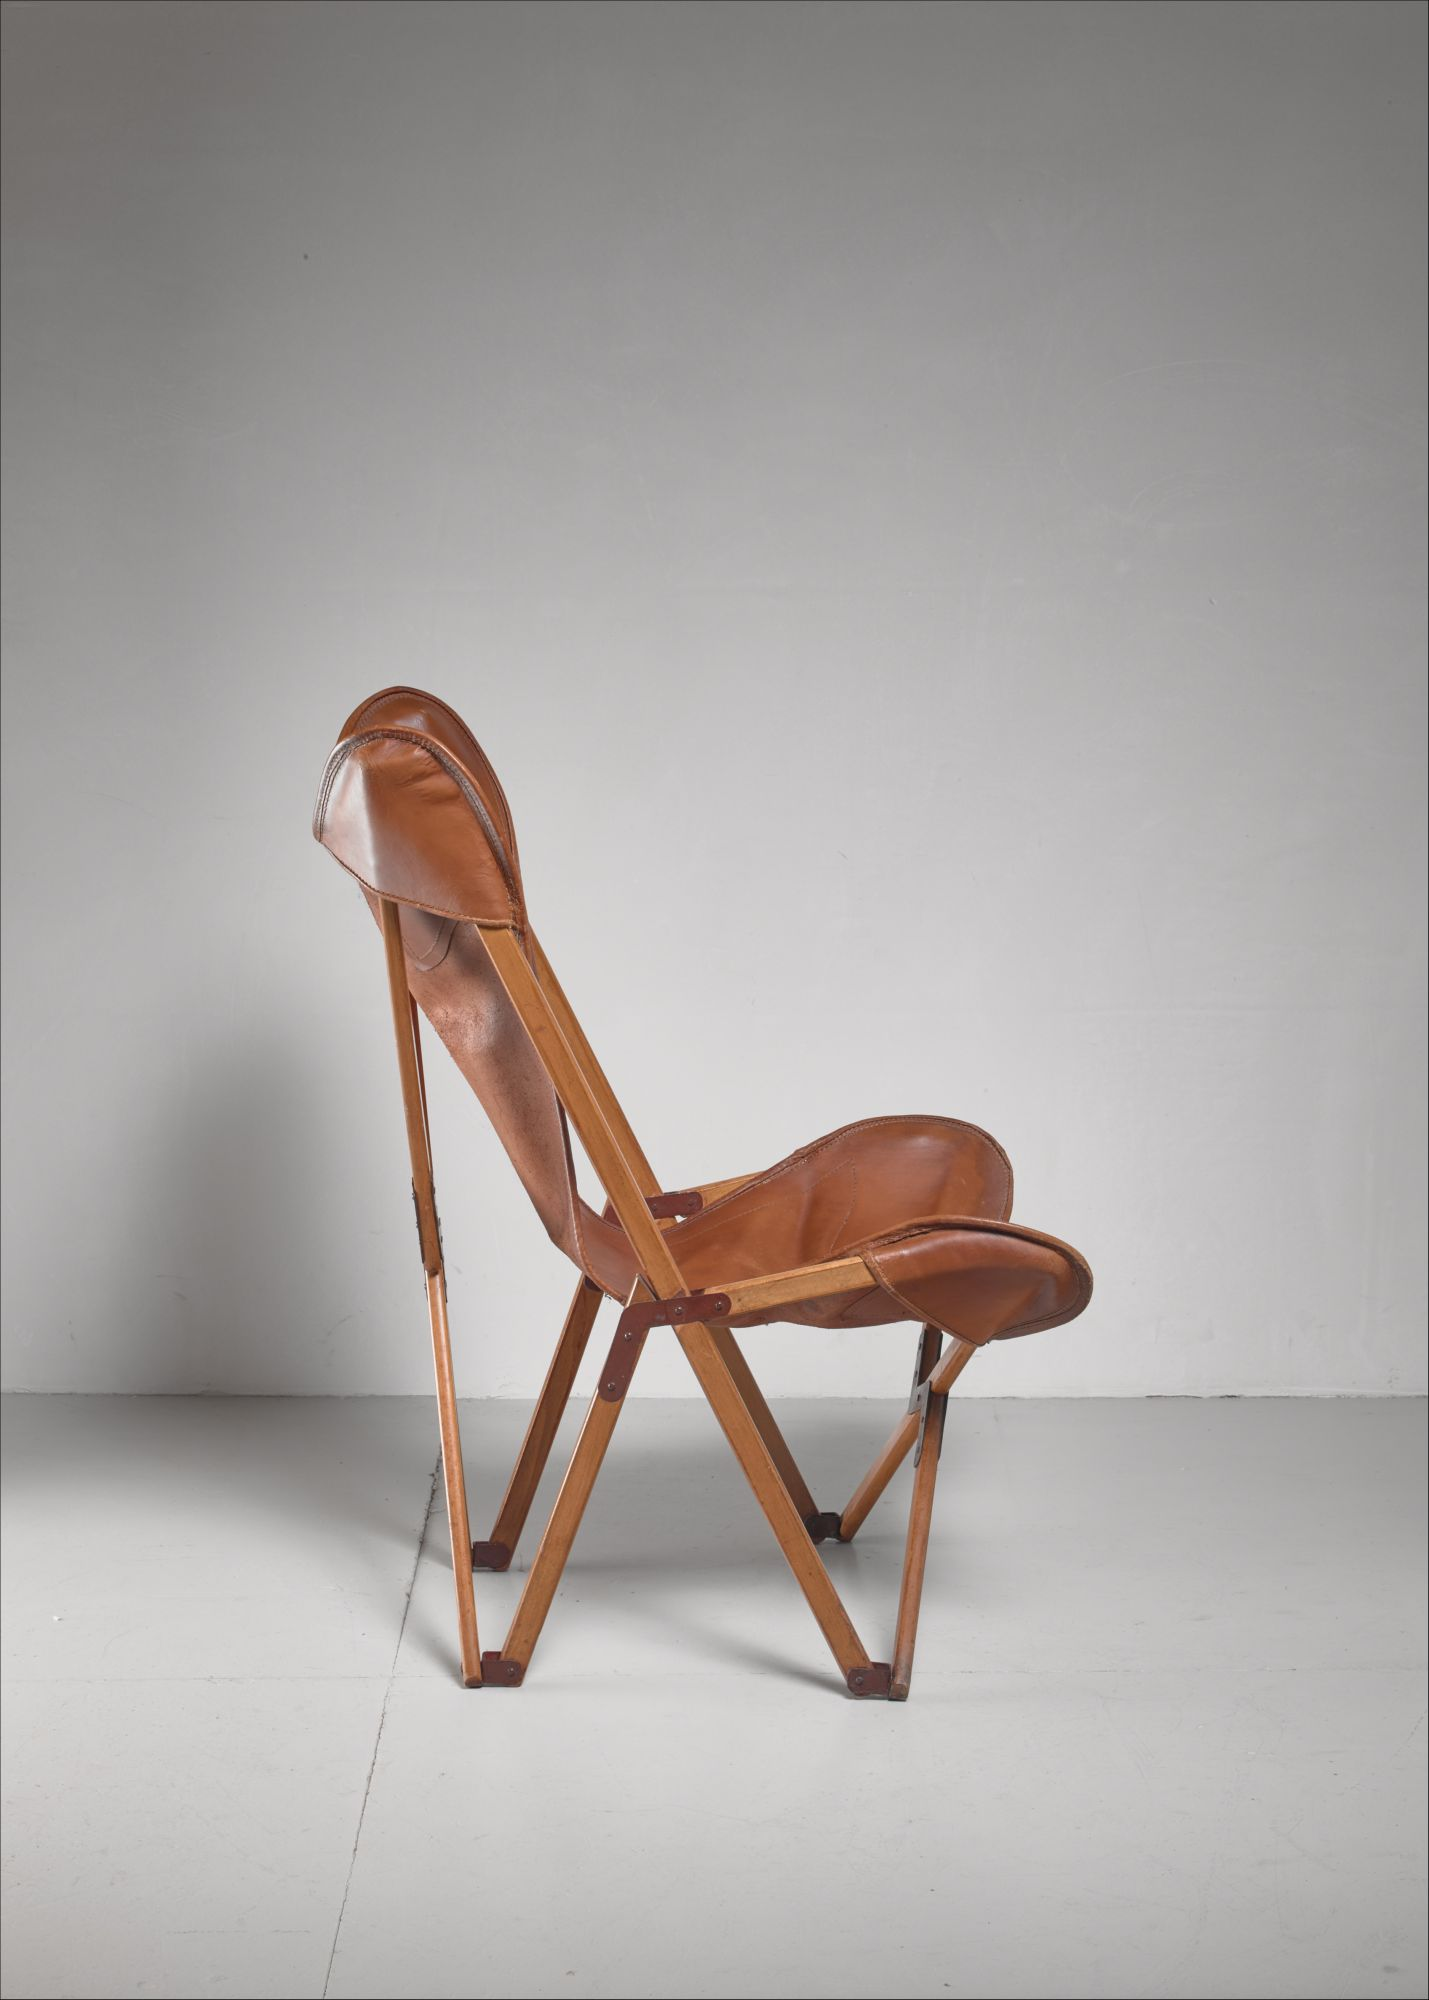 Excellent Tripolina Folding Chair Italy 1930S Evergreenethics Interior Chair Design Evergreenethicsorg